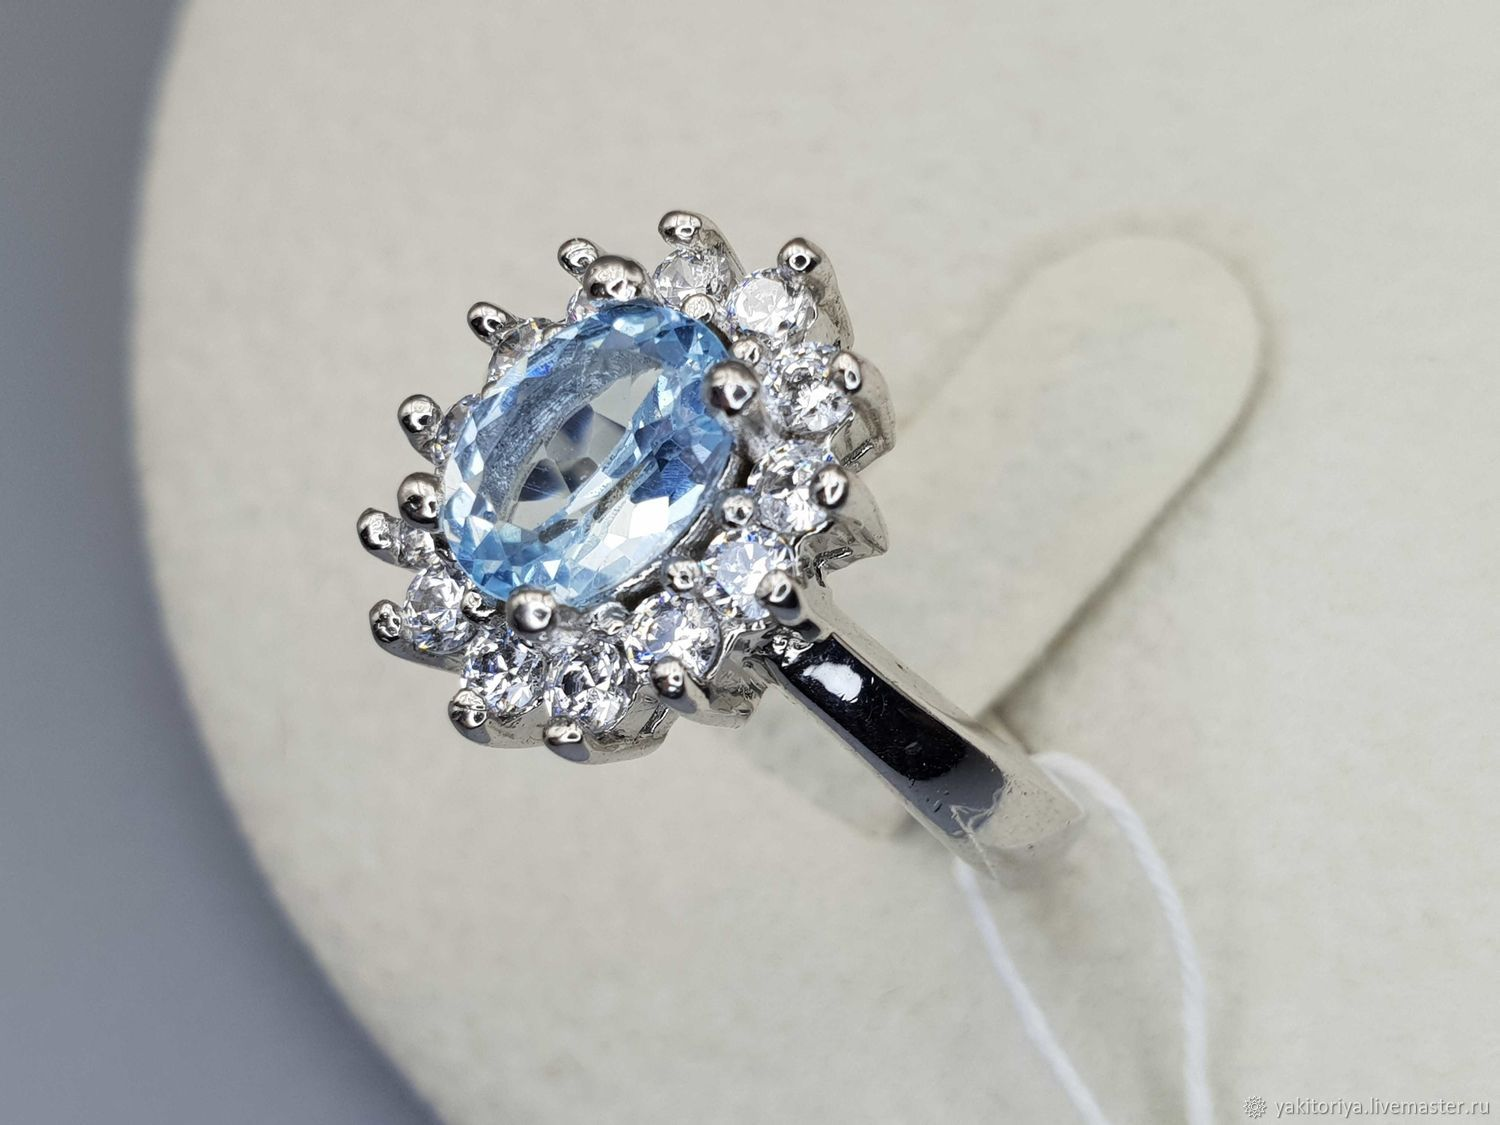 Silver ring with topaz 8h6 mm and cubic zirconia, Rings, Moscow,  Фото №1